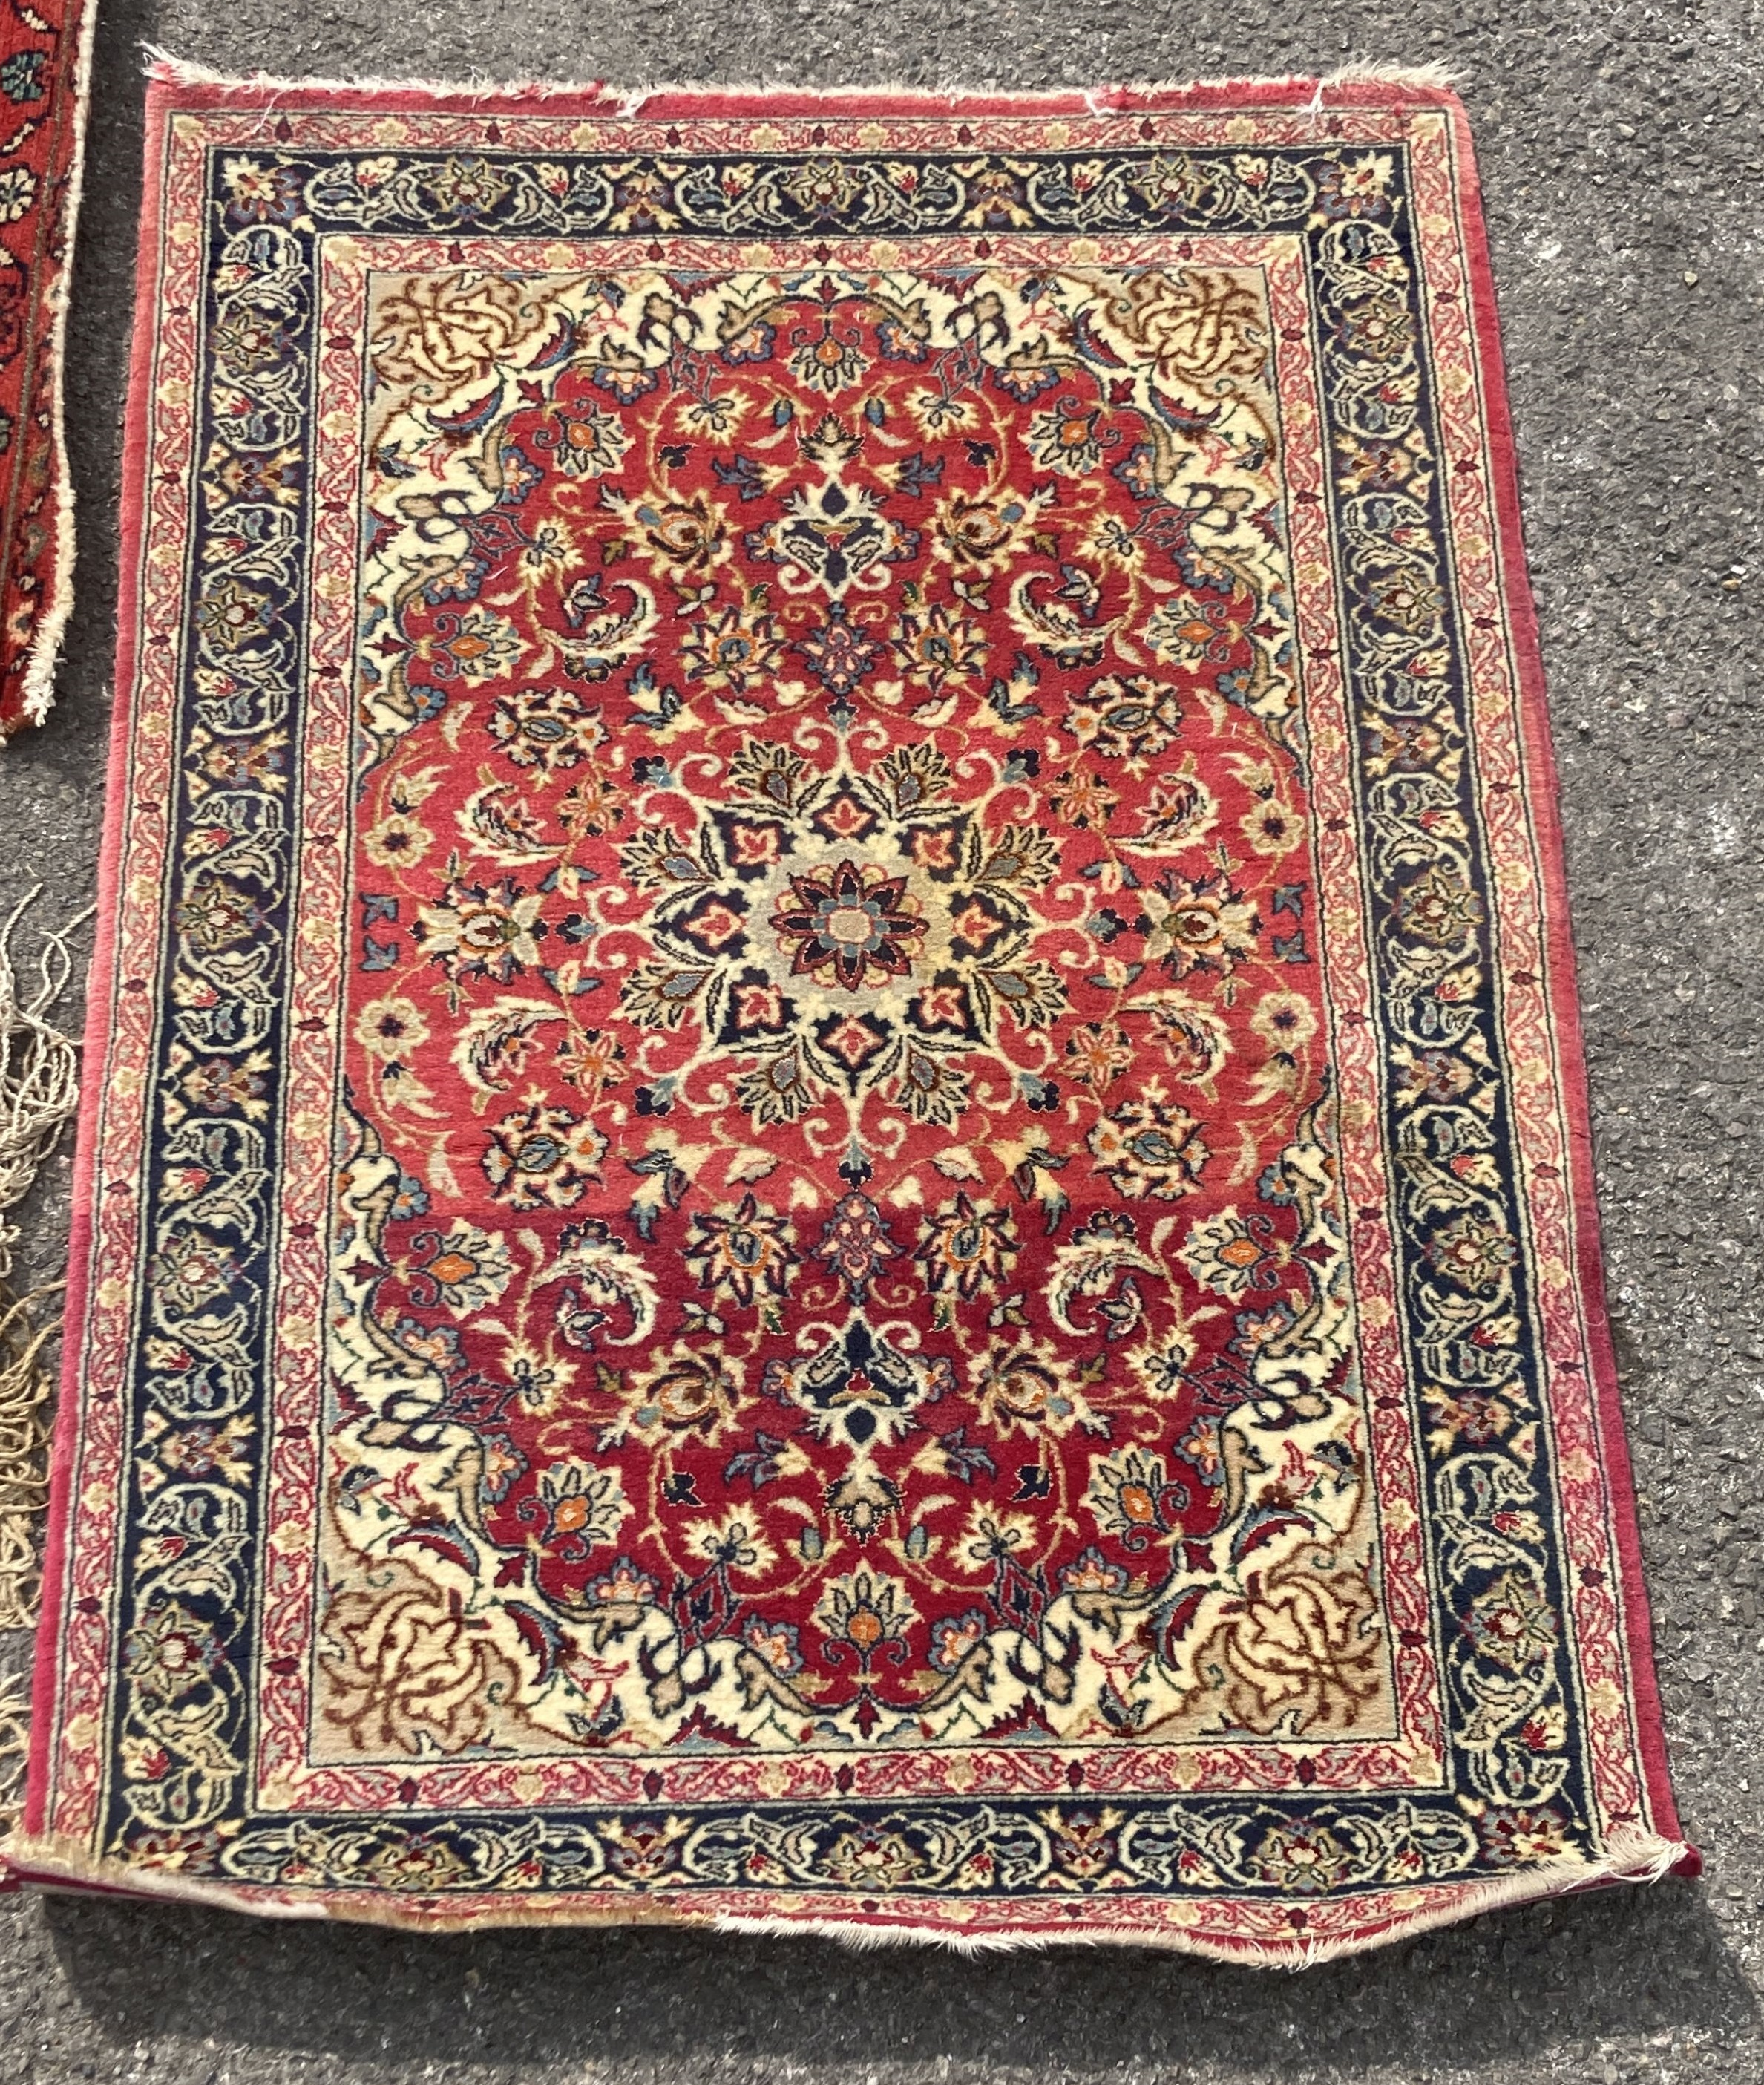 A Bokhara red ground runner, 305 x 80cm, together with a smaller Kashan style rug - Image 3 of 3